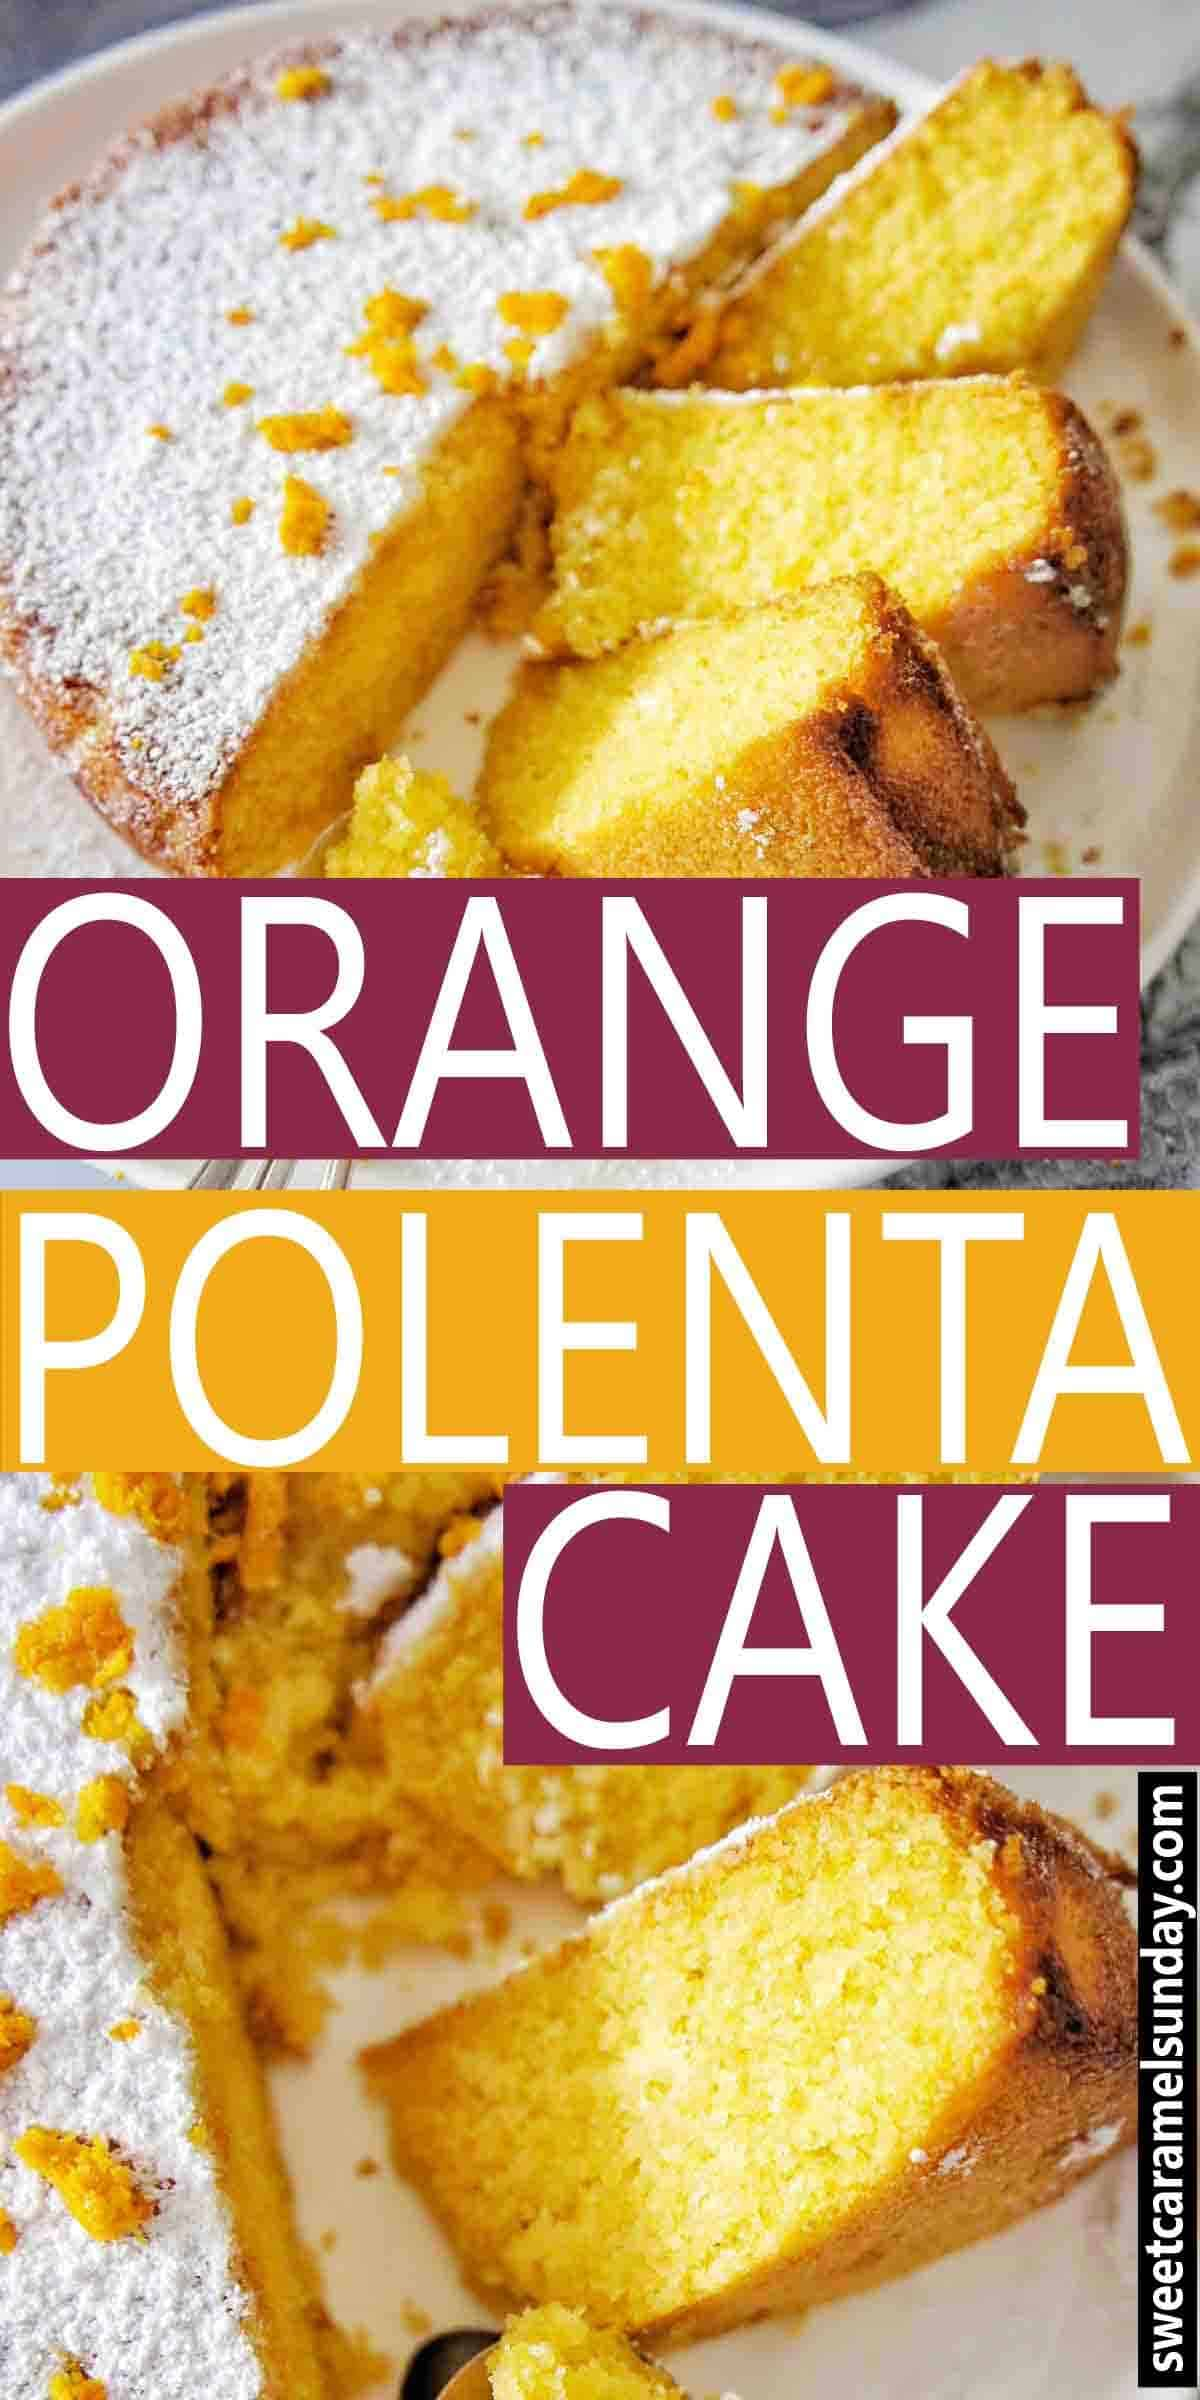 Orange Polenta Cake with text overlay